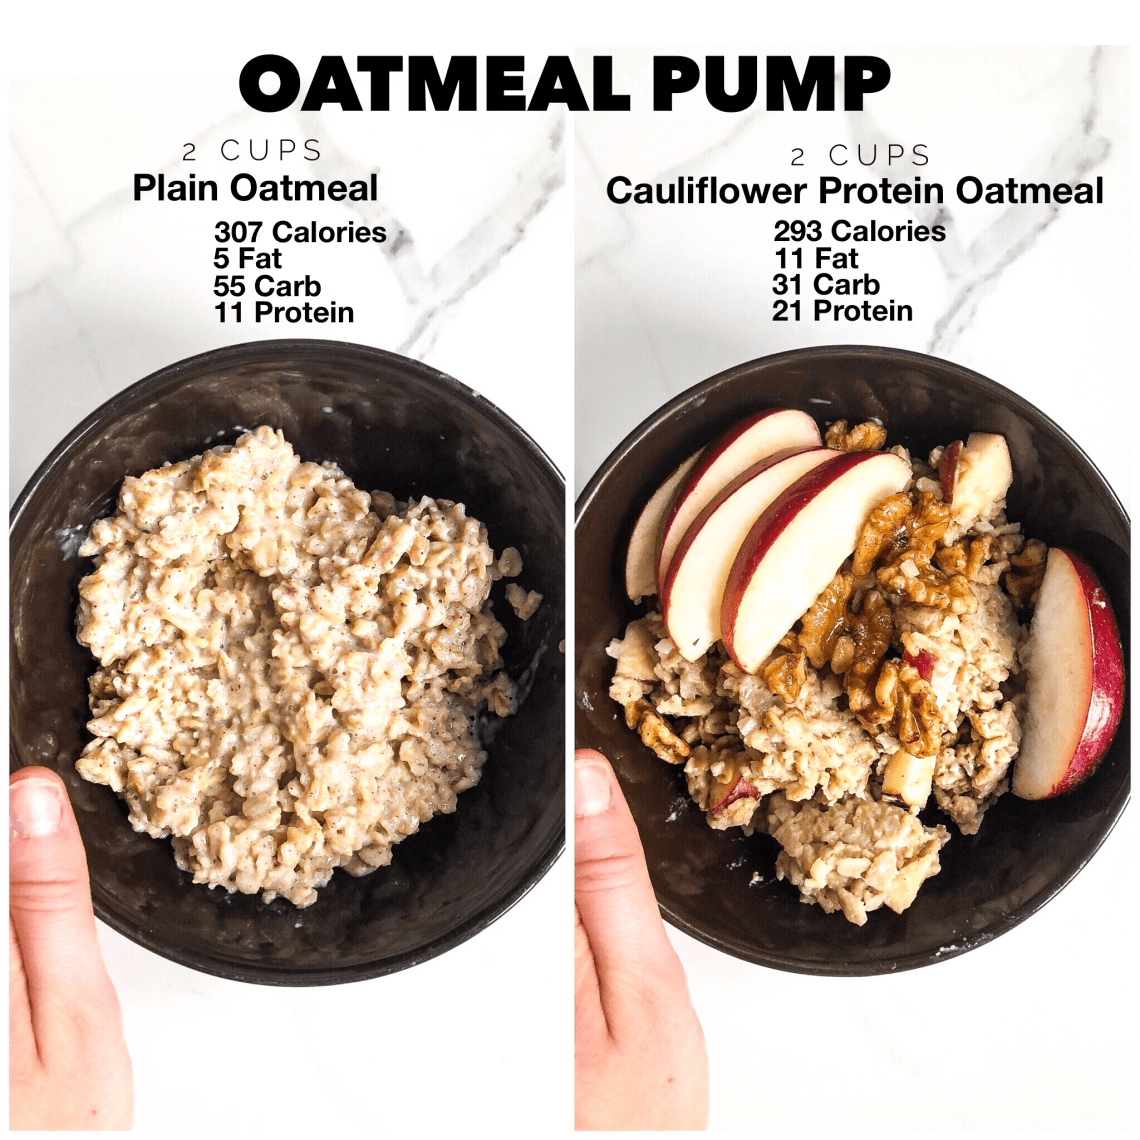 Apple Cinnamon Cauliflower Protein Oats A New High Protein Veggie Filled Breakfast Osinga Nutrition Registered Dietitian In The Durham Region